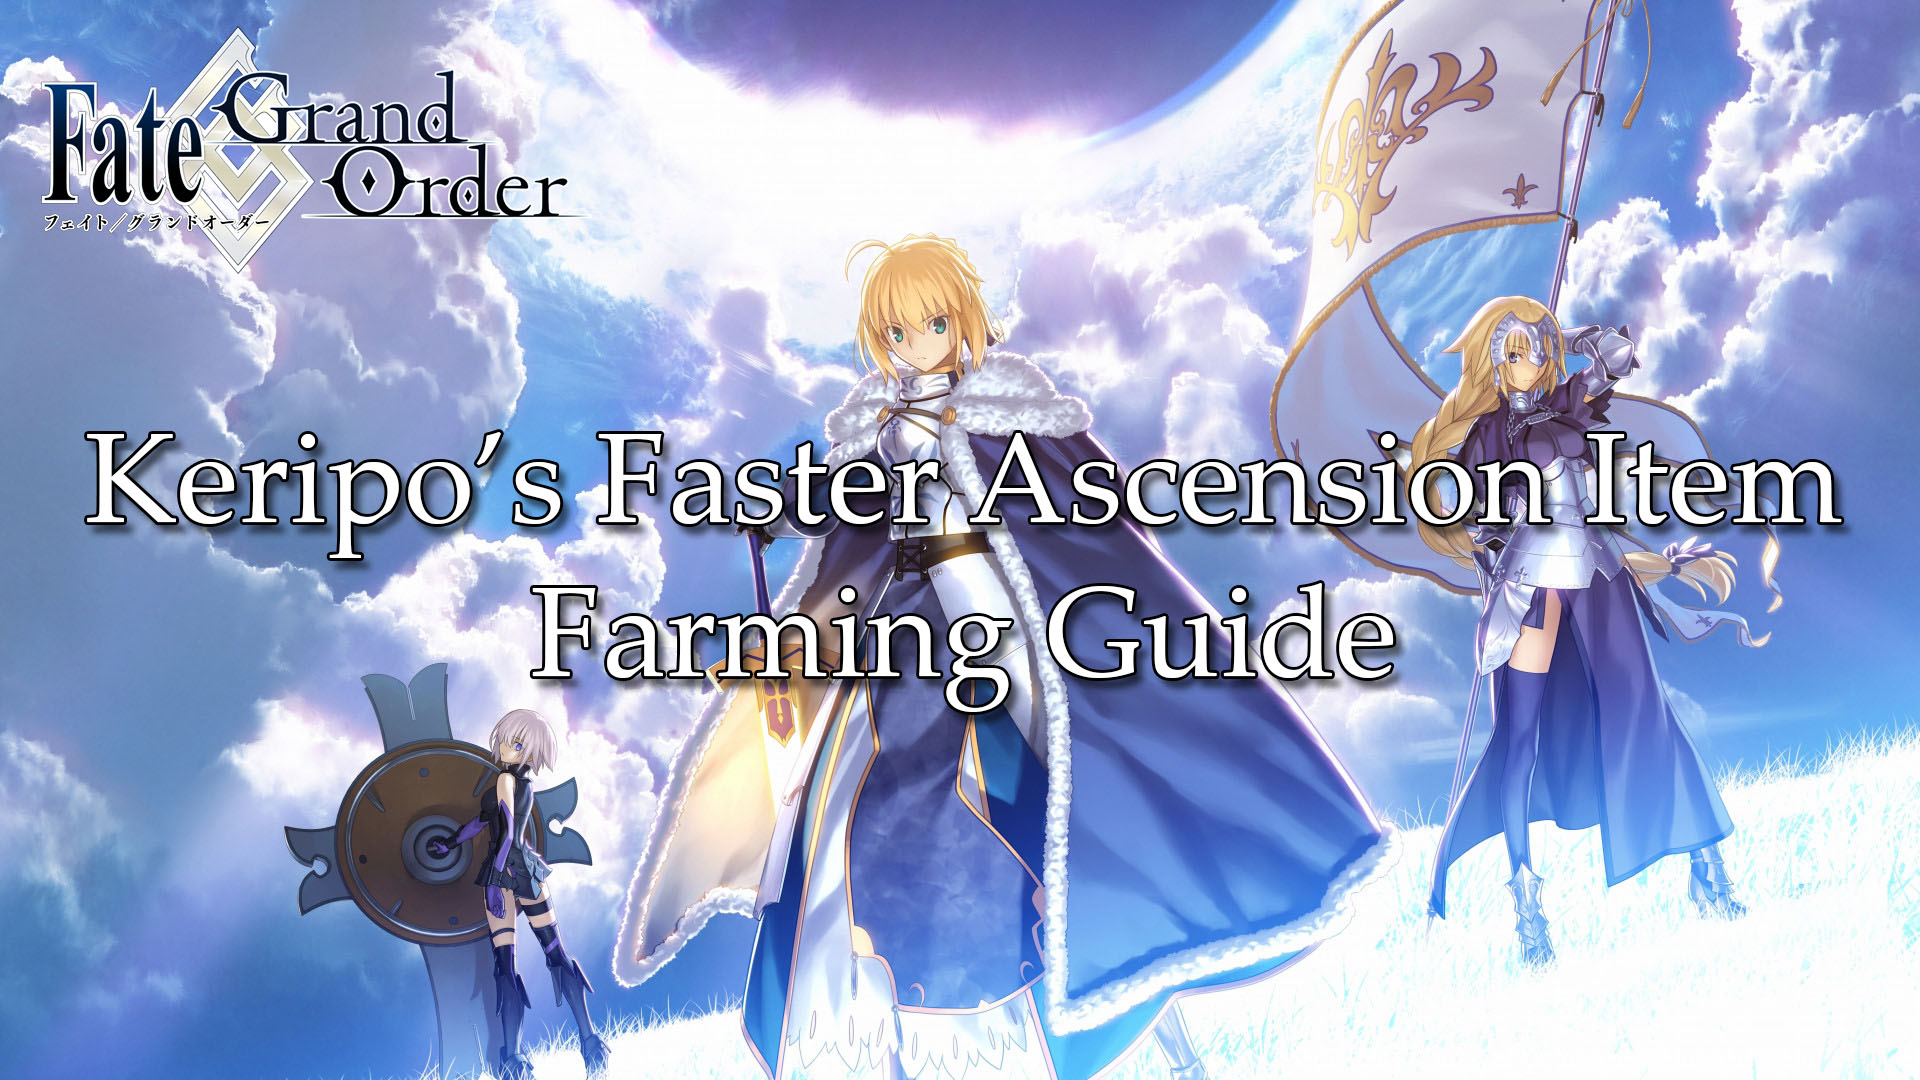 F/GO] Faster Ascension Item Farming Guide with Packet